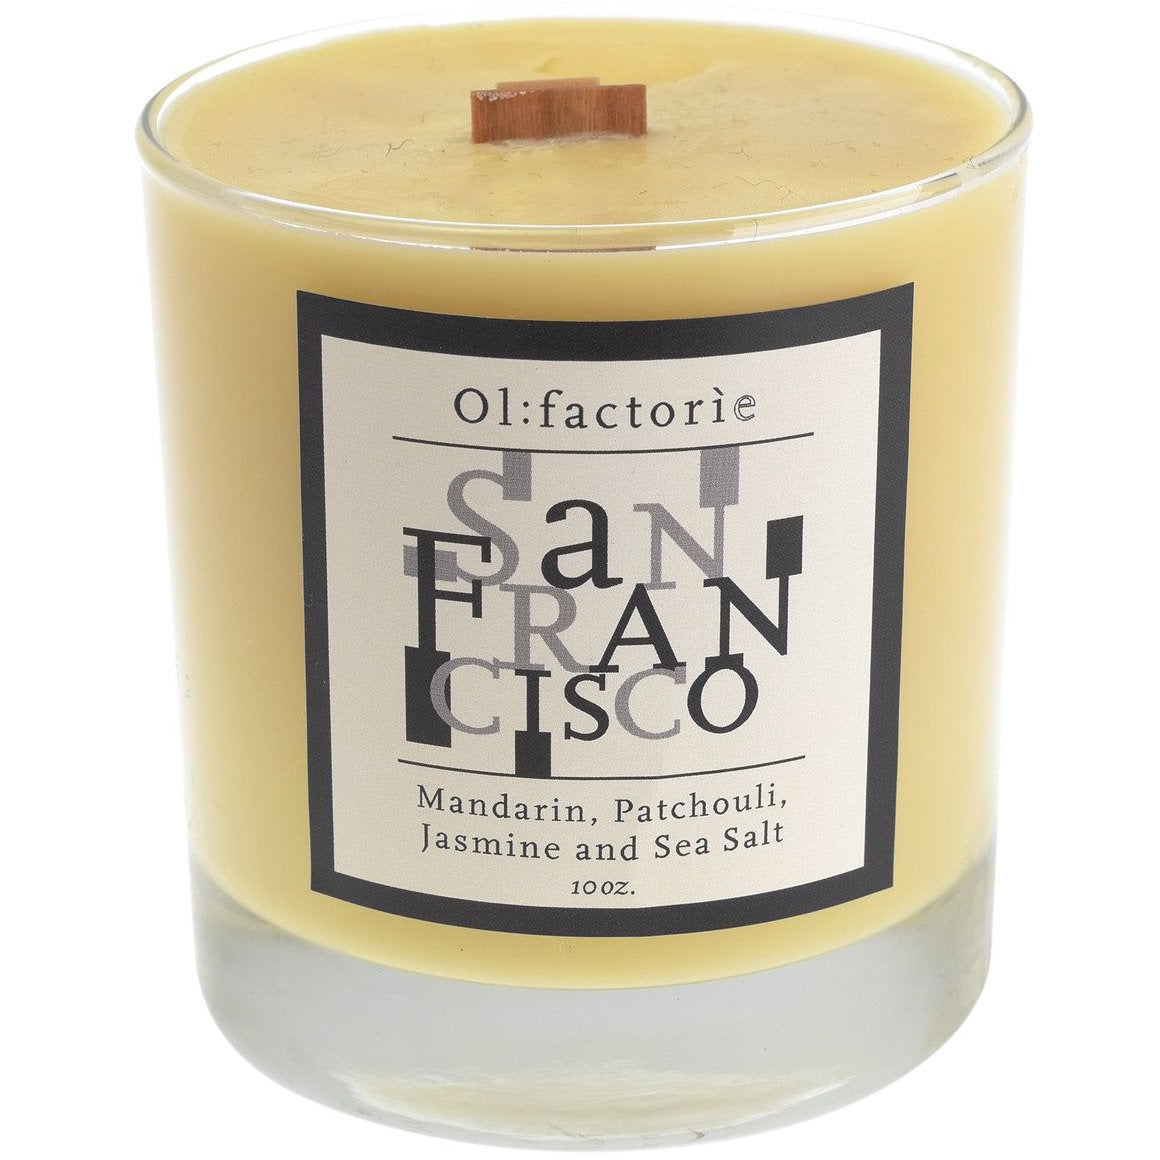 San Francisco Candle 10oz - Olfactorie Candles